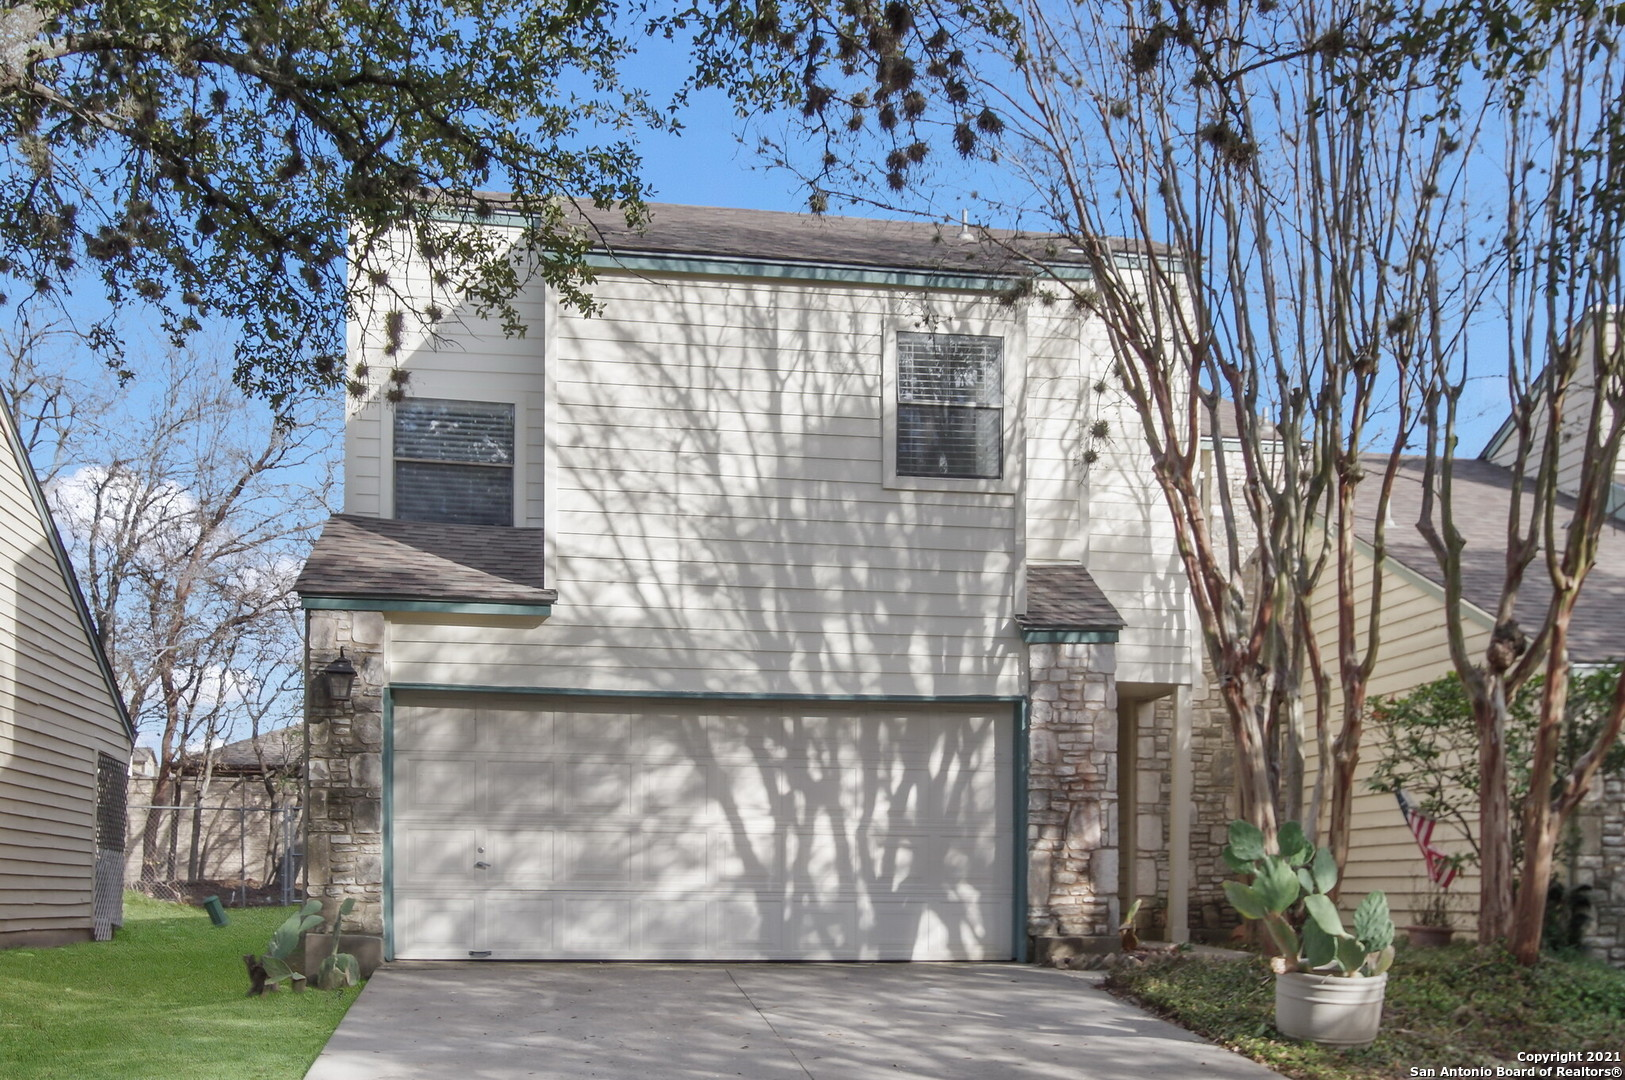 This spacious and move-in ready townhome has 3 bedrooms and 2.5 baths and is located in a private, g